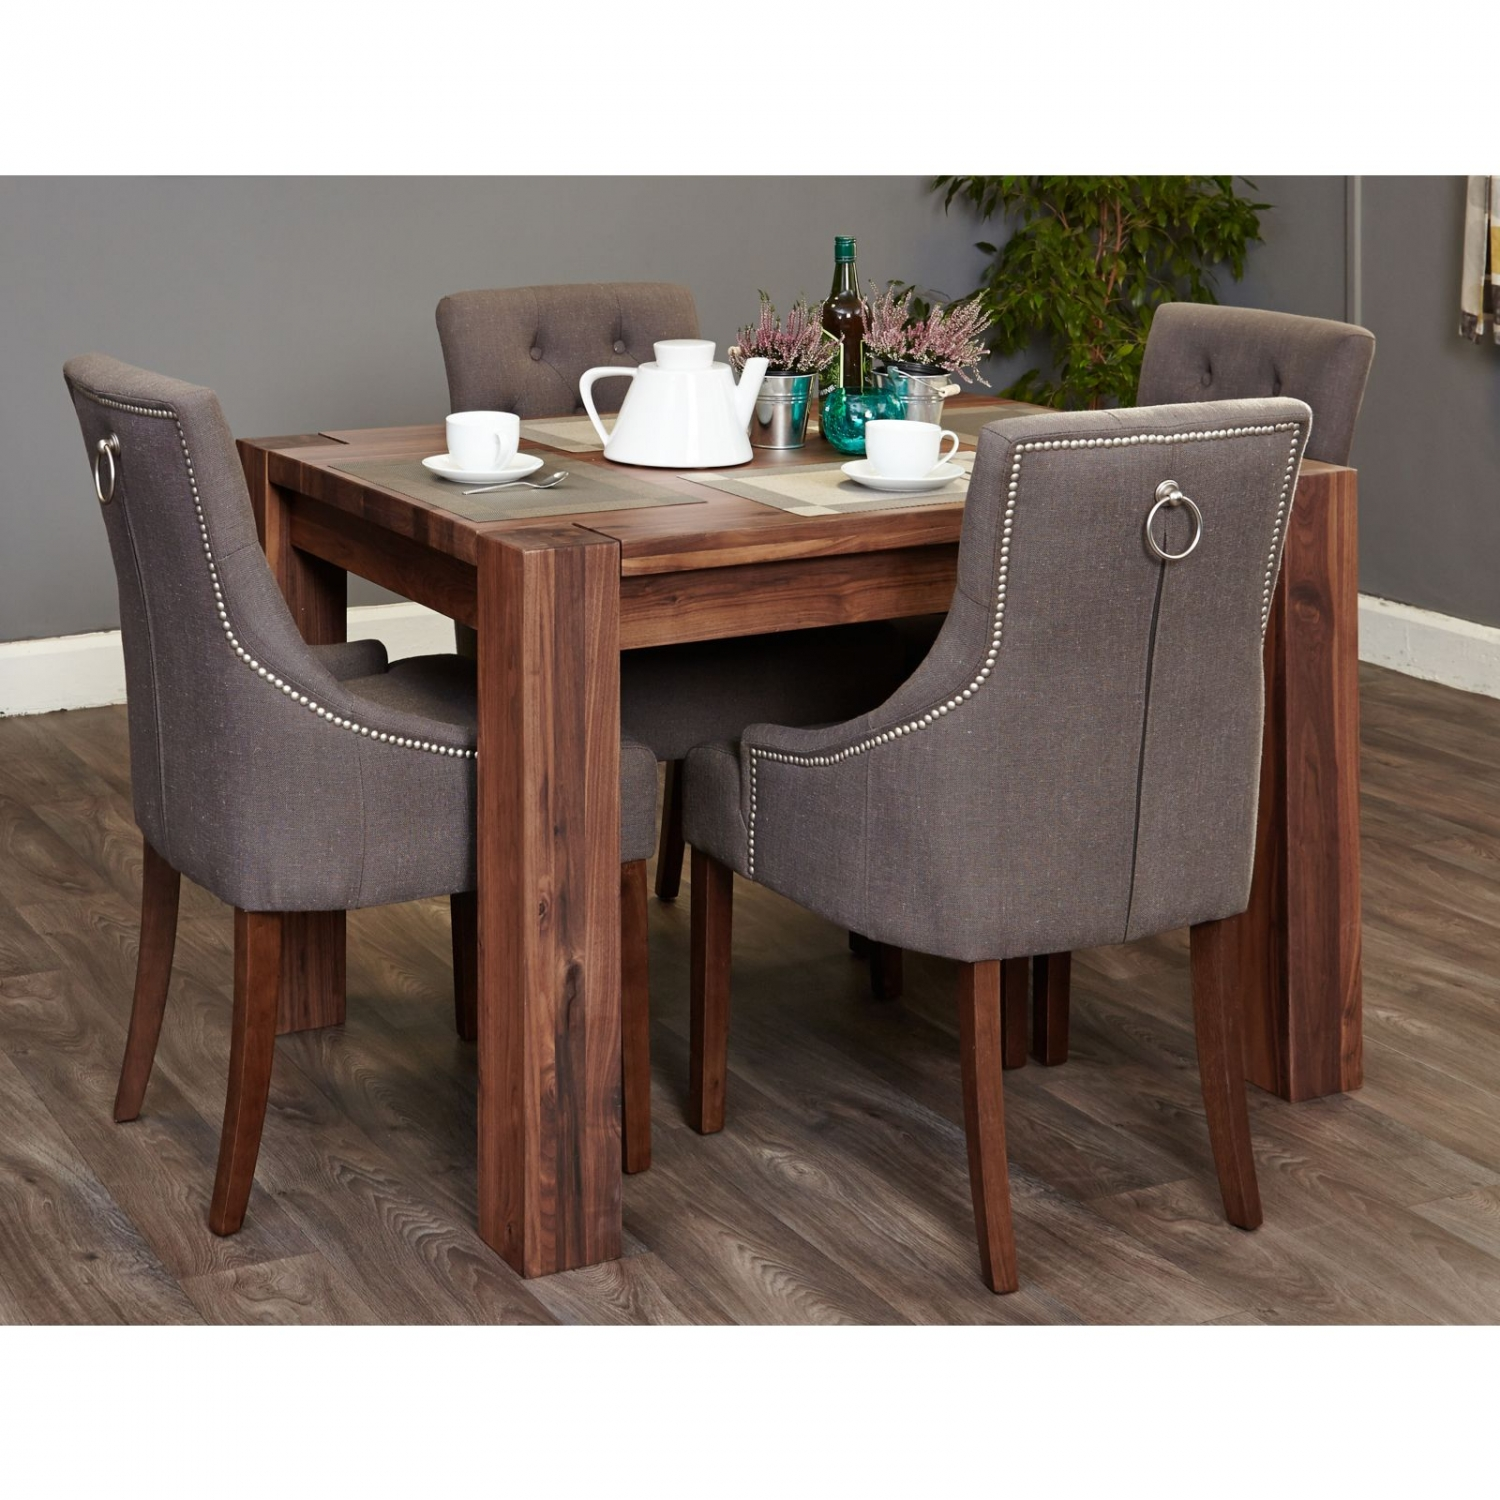 solid walnut furniture small dining table and four luxury chairs set